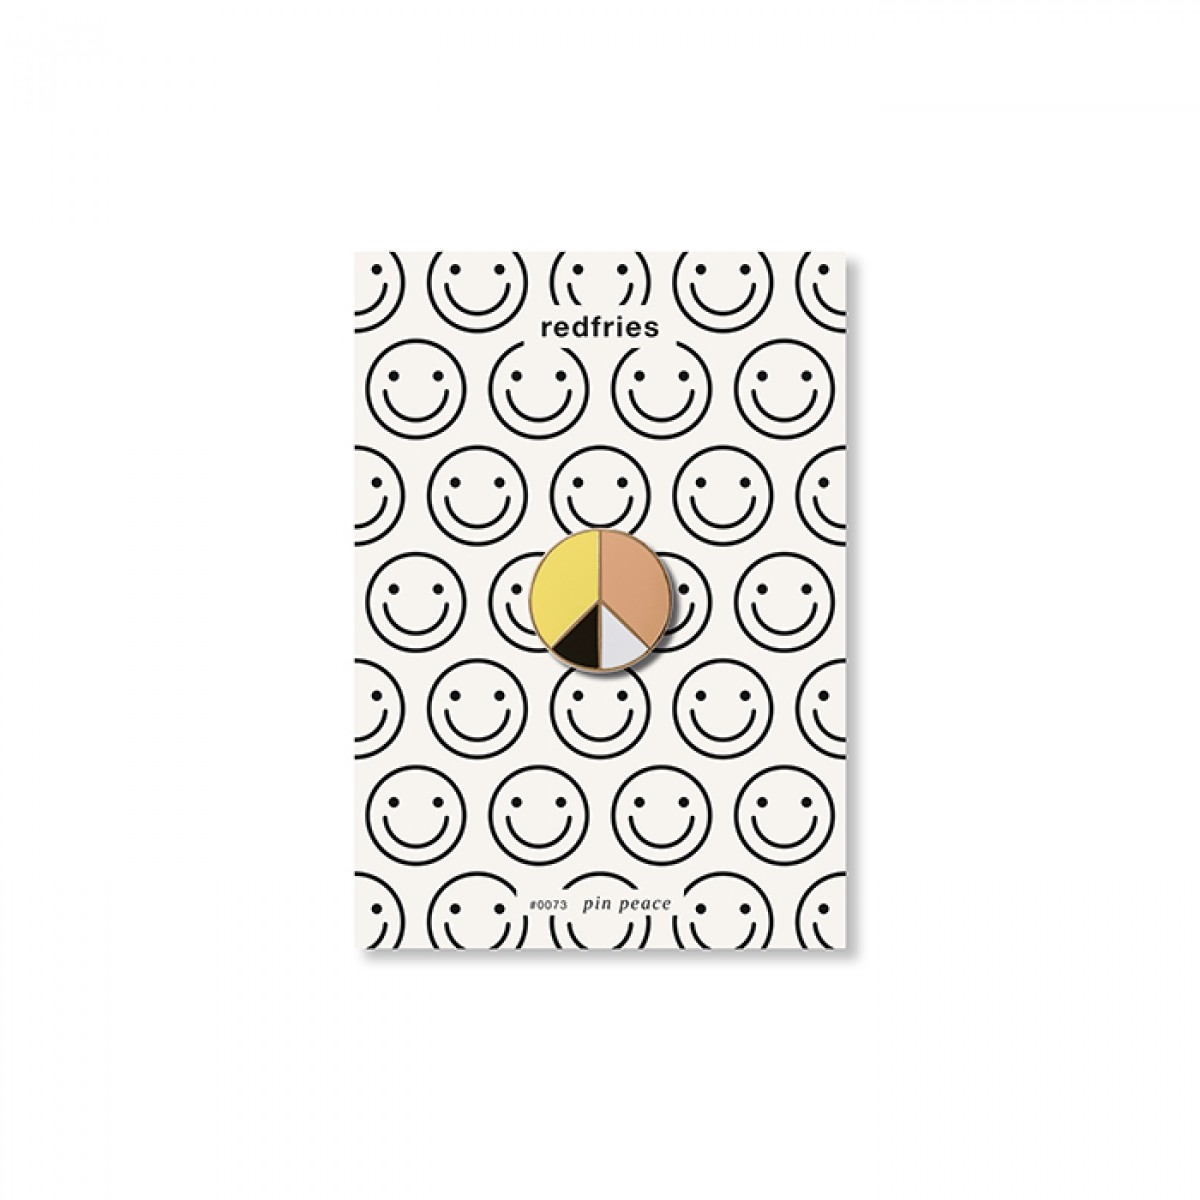 redfries pin peace – Pin Hartemaille